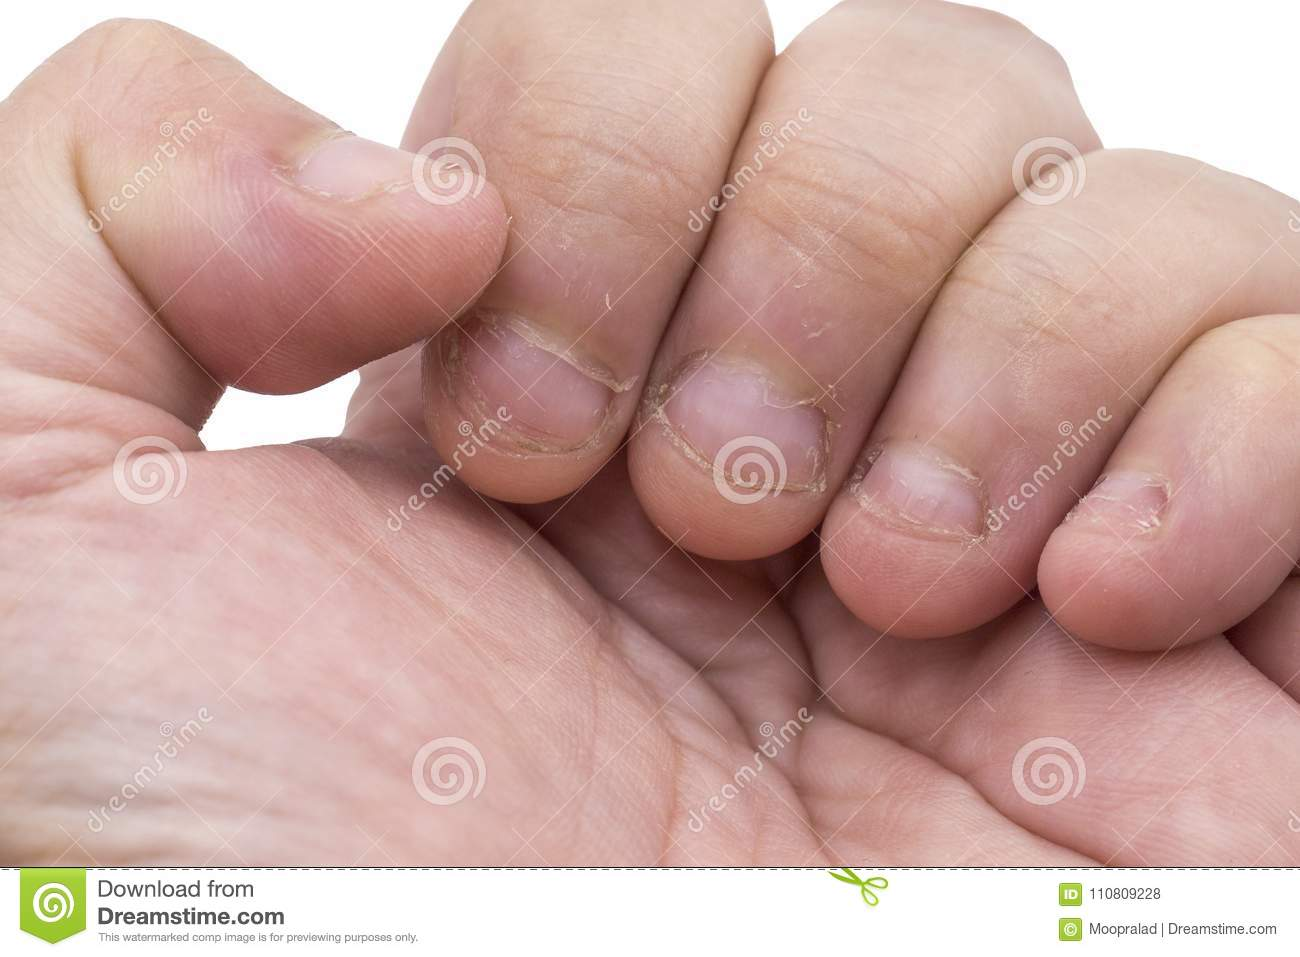 Bitten fingers closeup on white background with clipping path